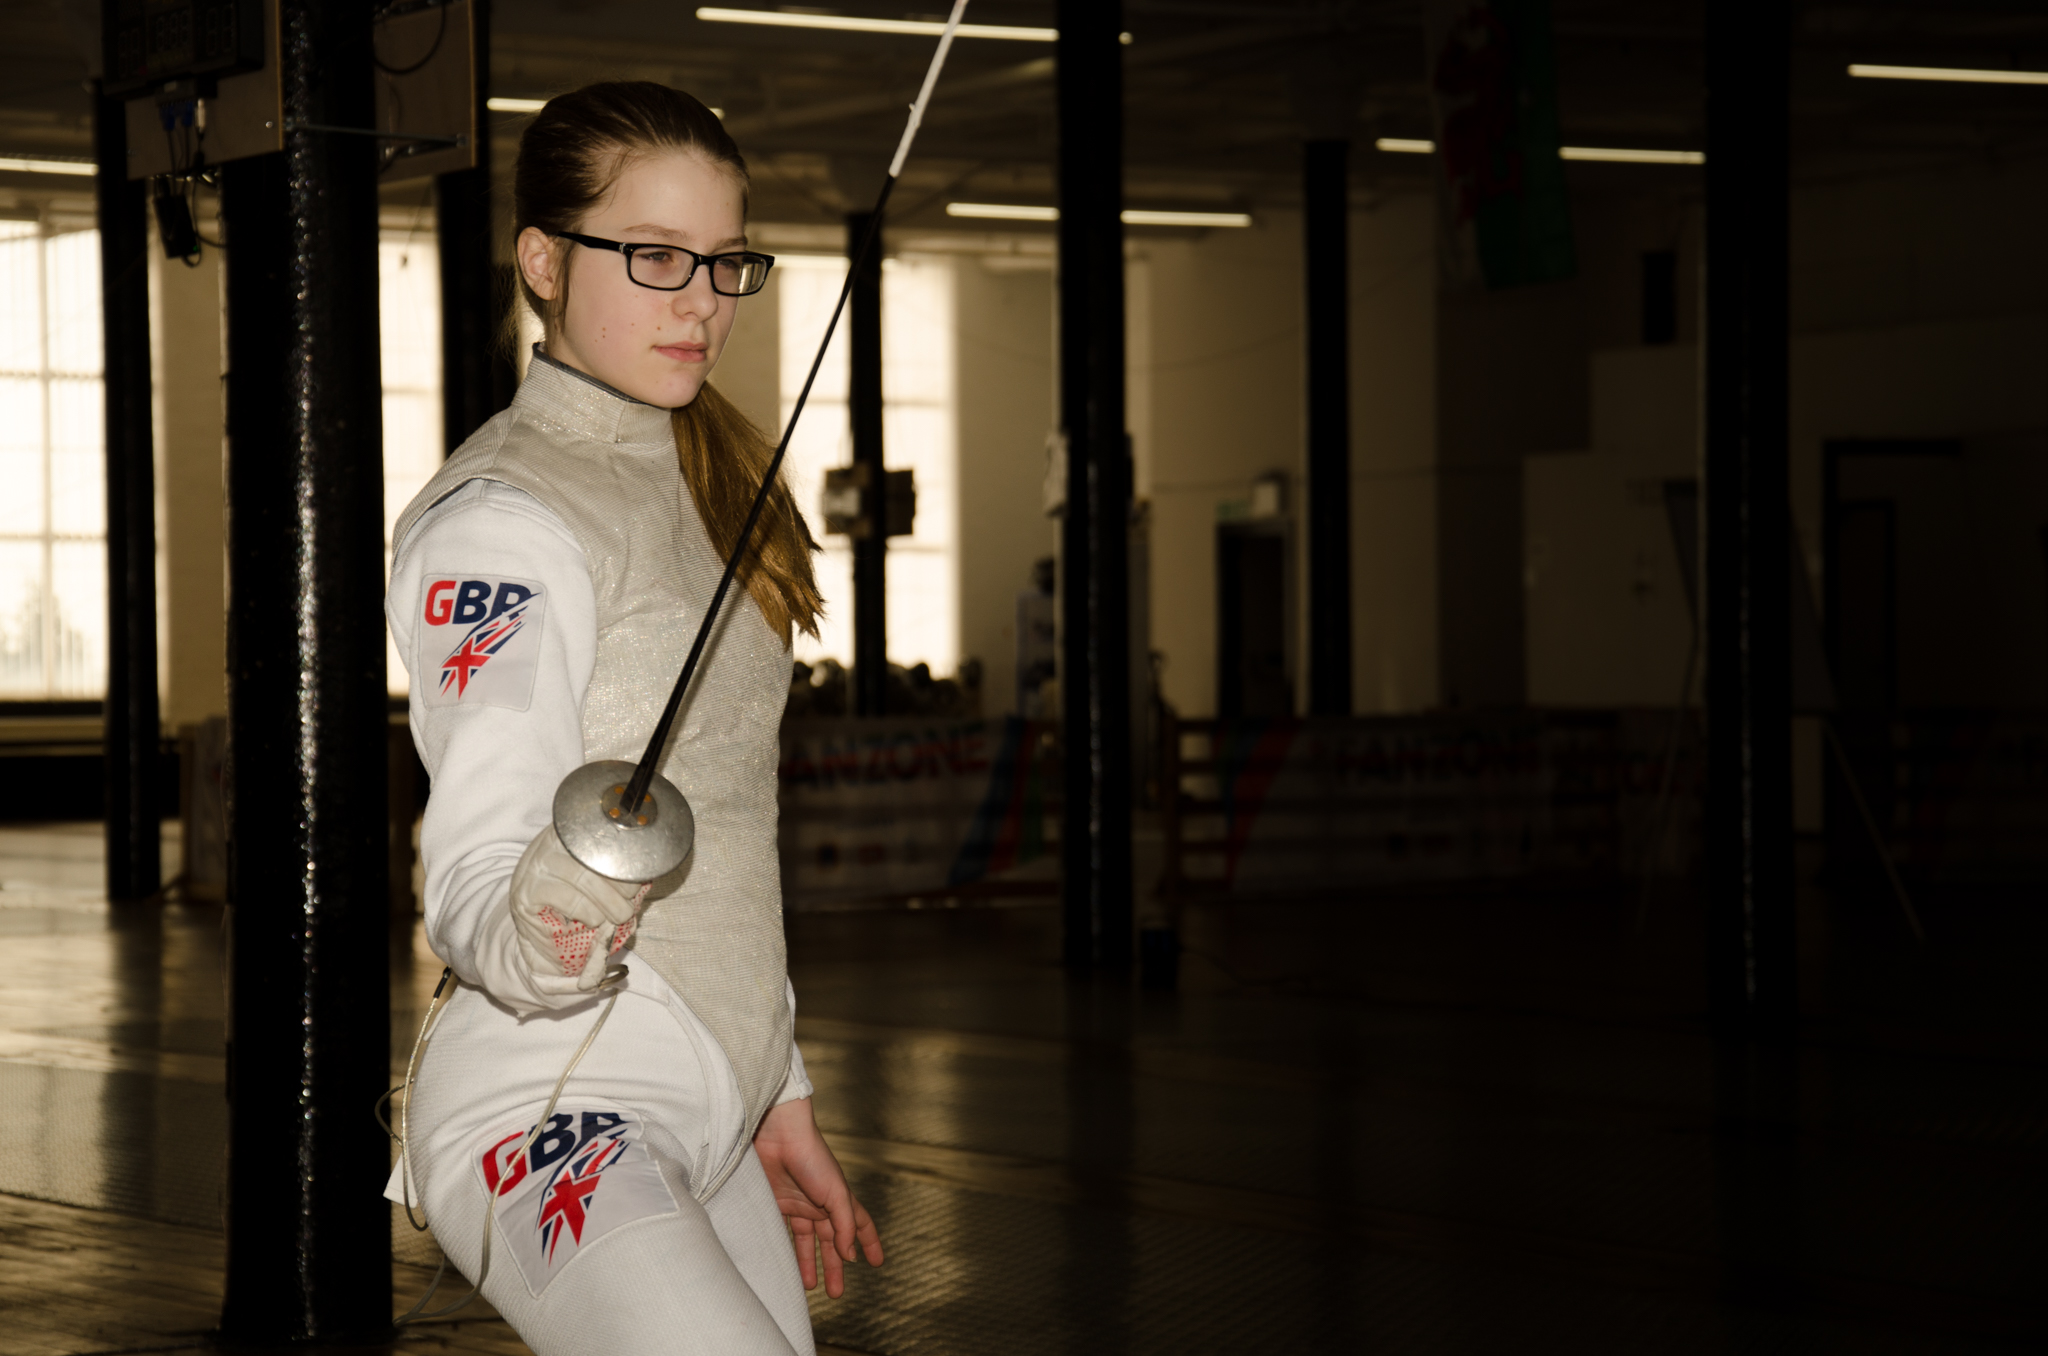 GB fencing star Lucy Belle